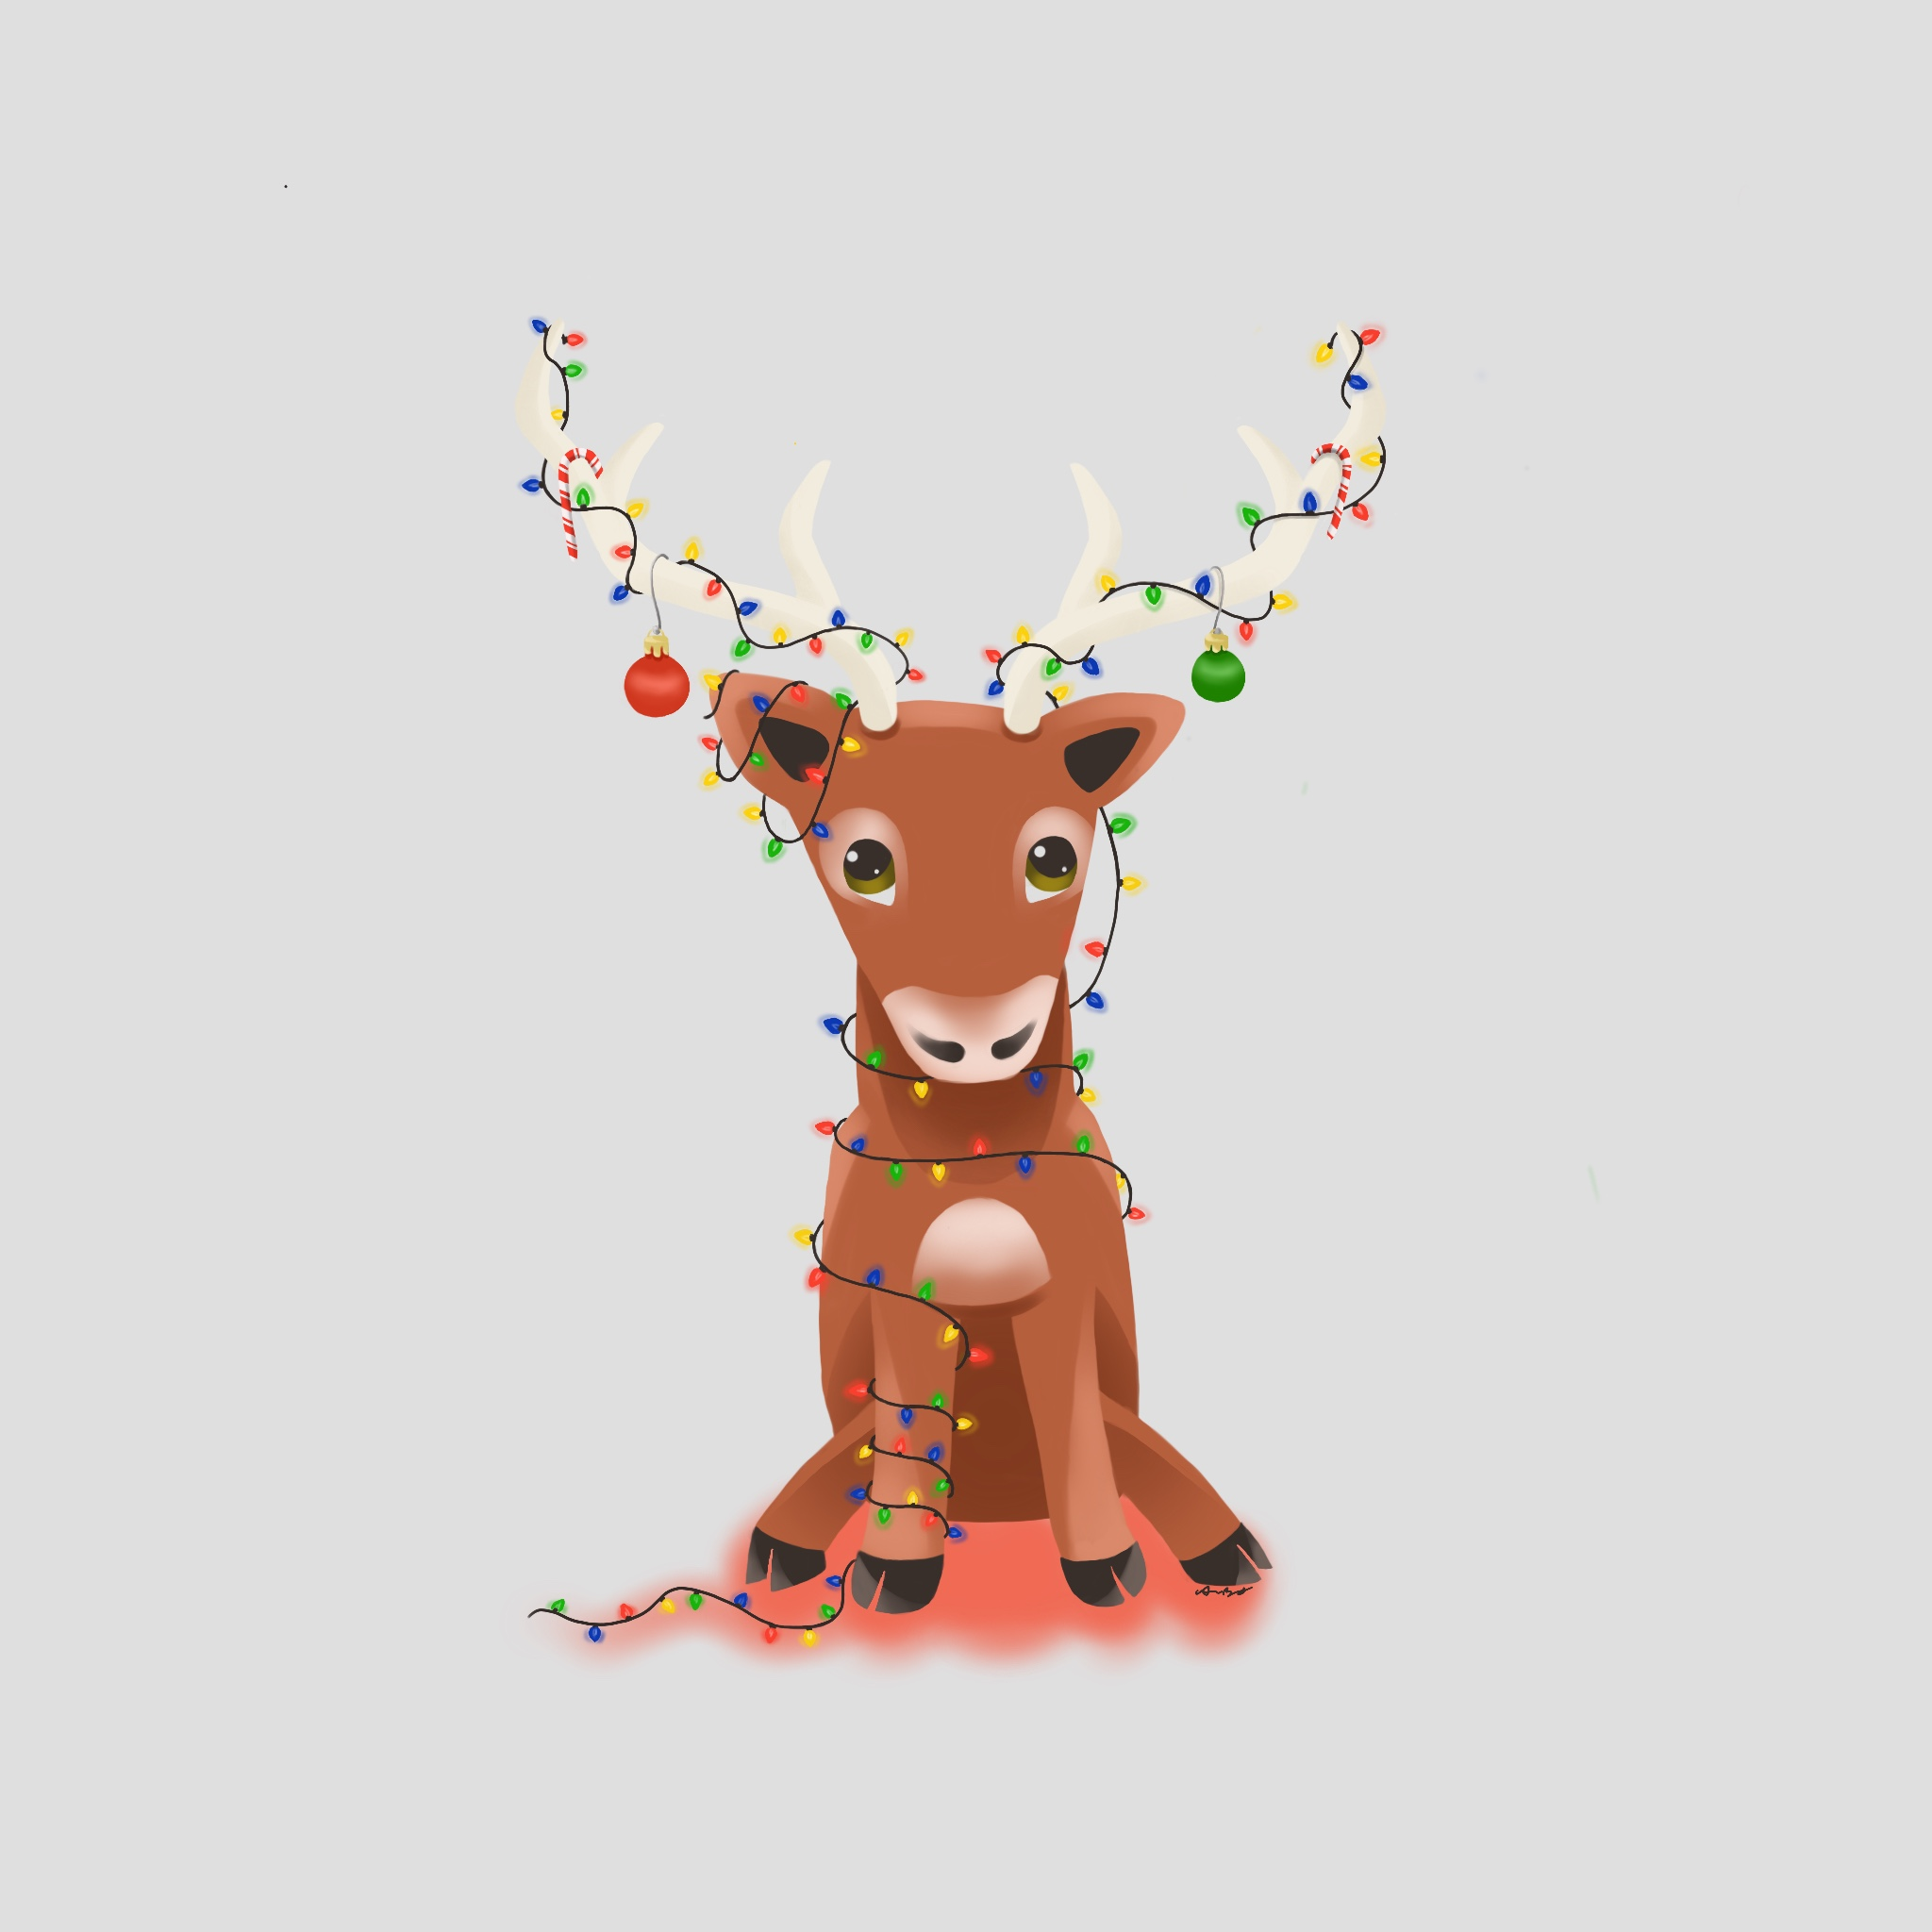 reindeer_lights.JPG